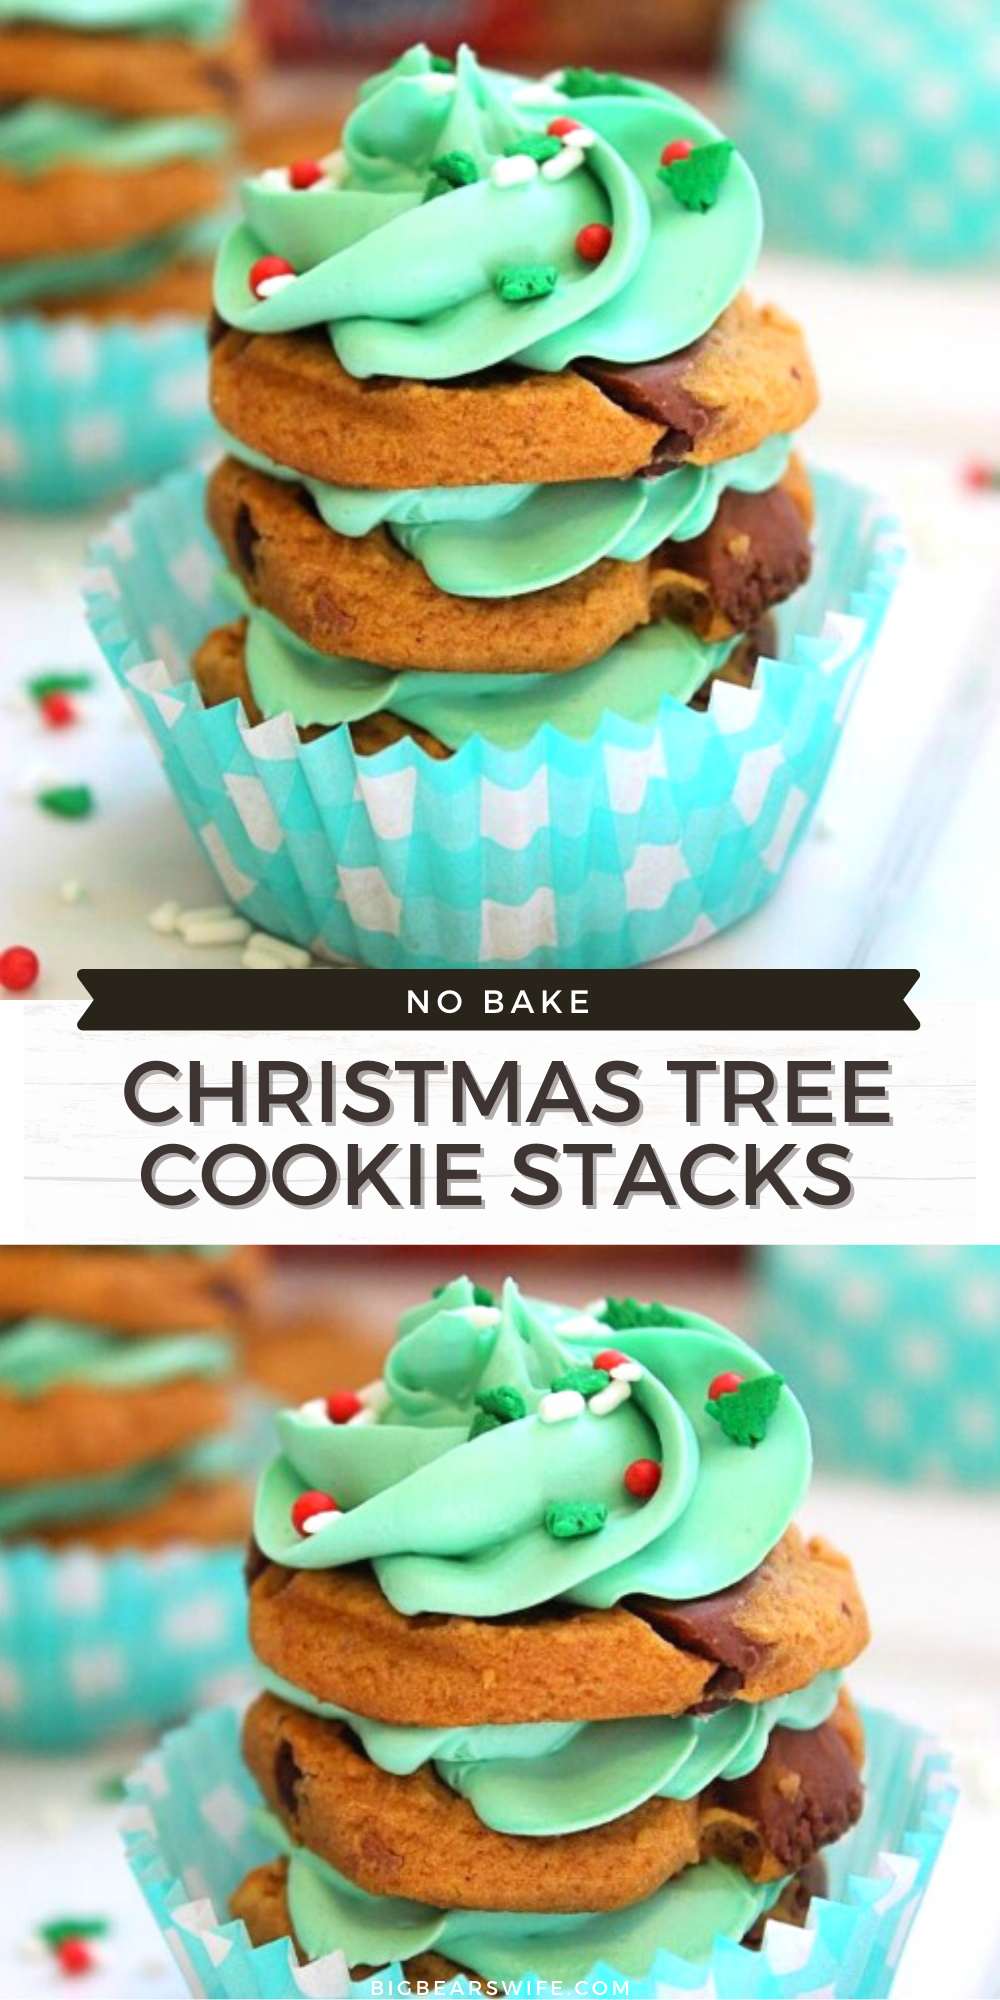 If you need a quick but cute no bake Christmas dessert, these No Bake Christmas Tree Cookie Stacks are for you! They're made with stacks of store-bought cookies and frosting to create the cutest little Christmas treats.